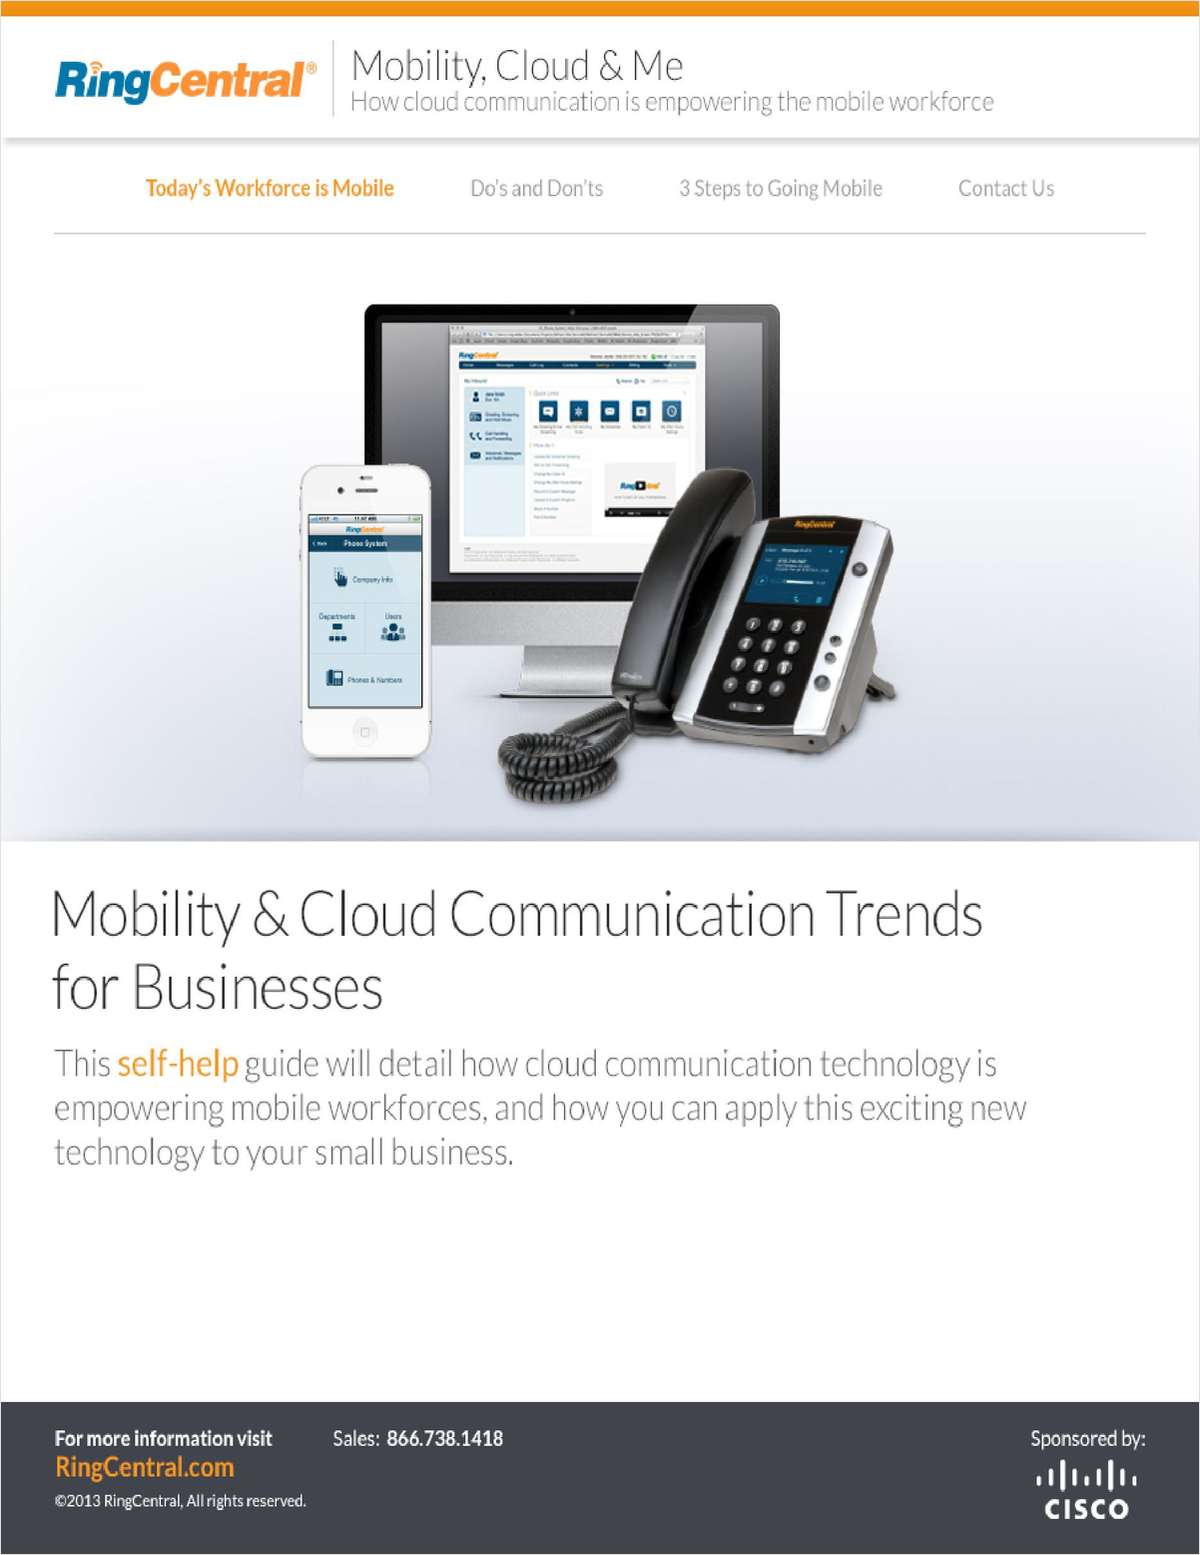 Mobility & Cloud Communication Trends for Businesses